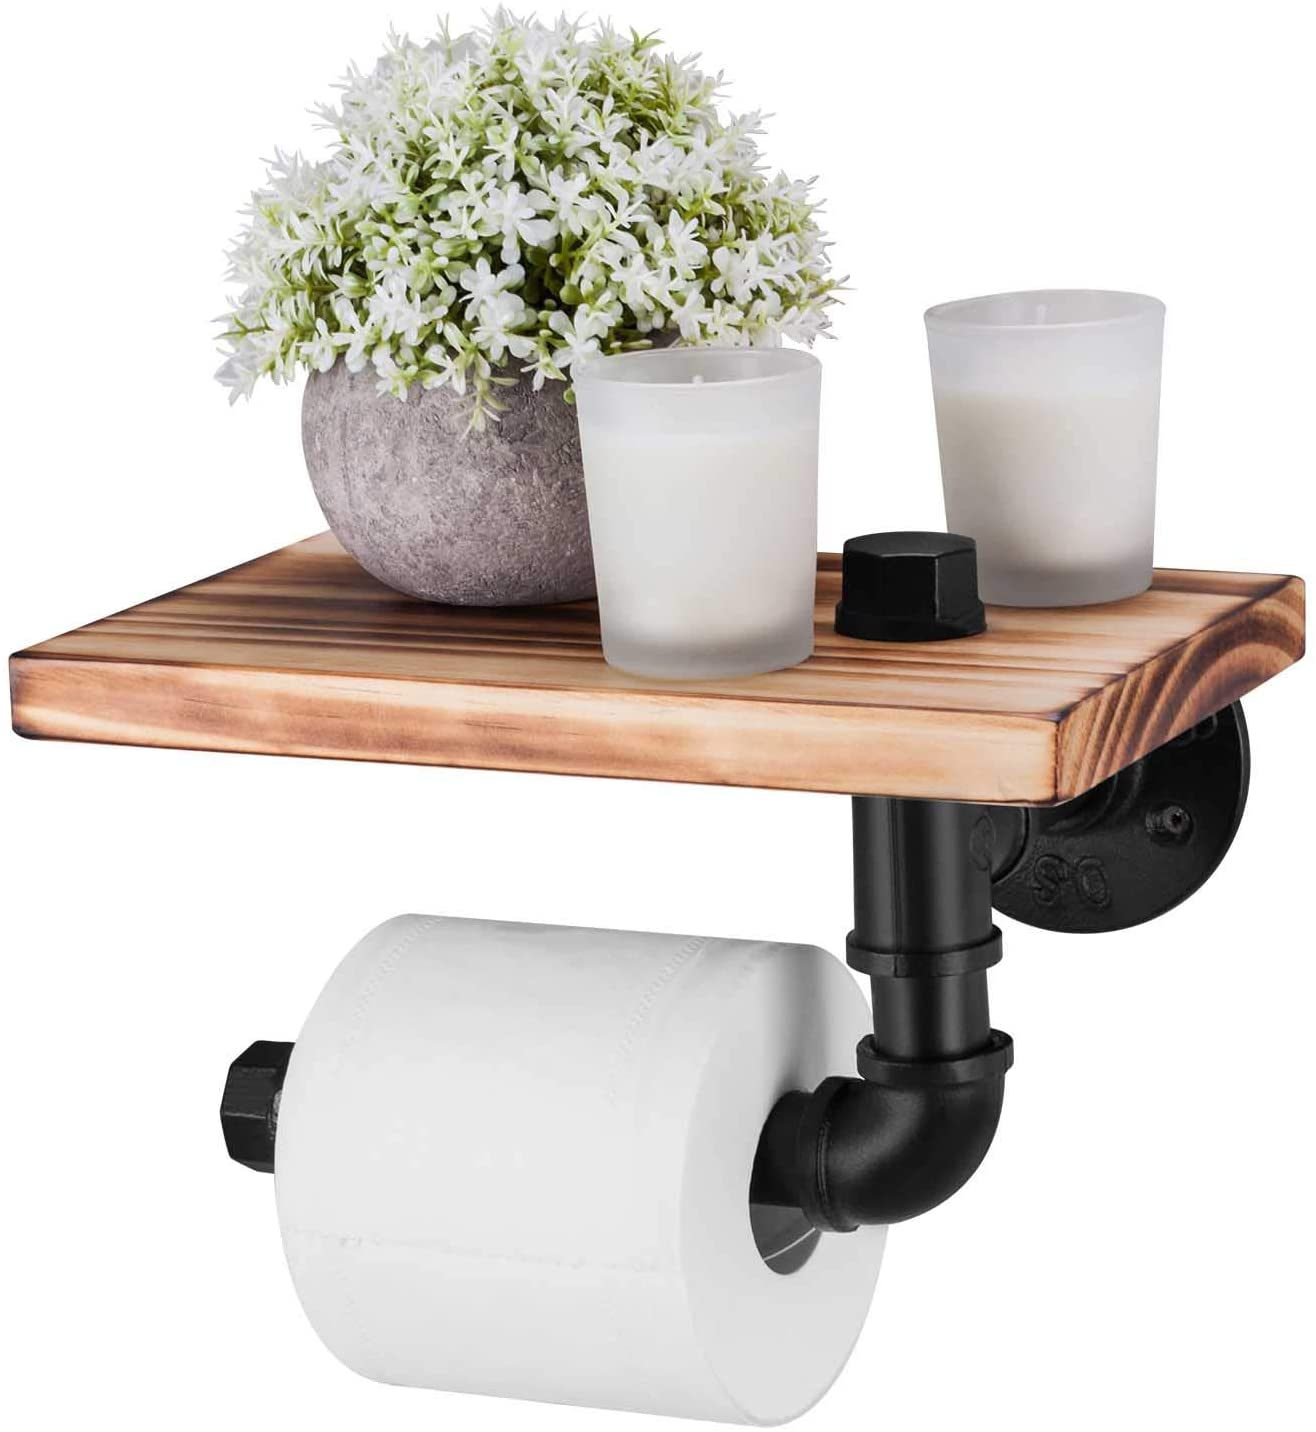 Elibbren Industrial Toilet Paper Holder